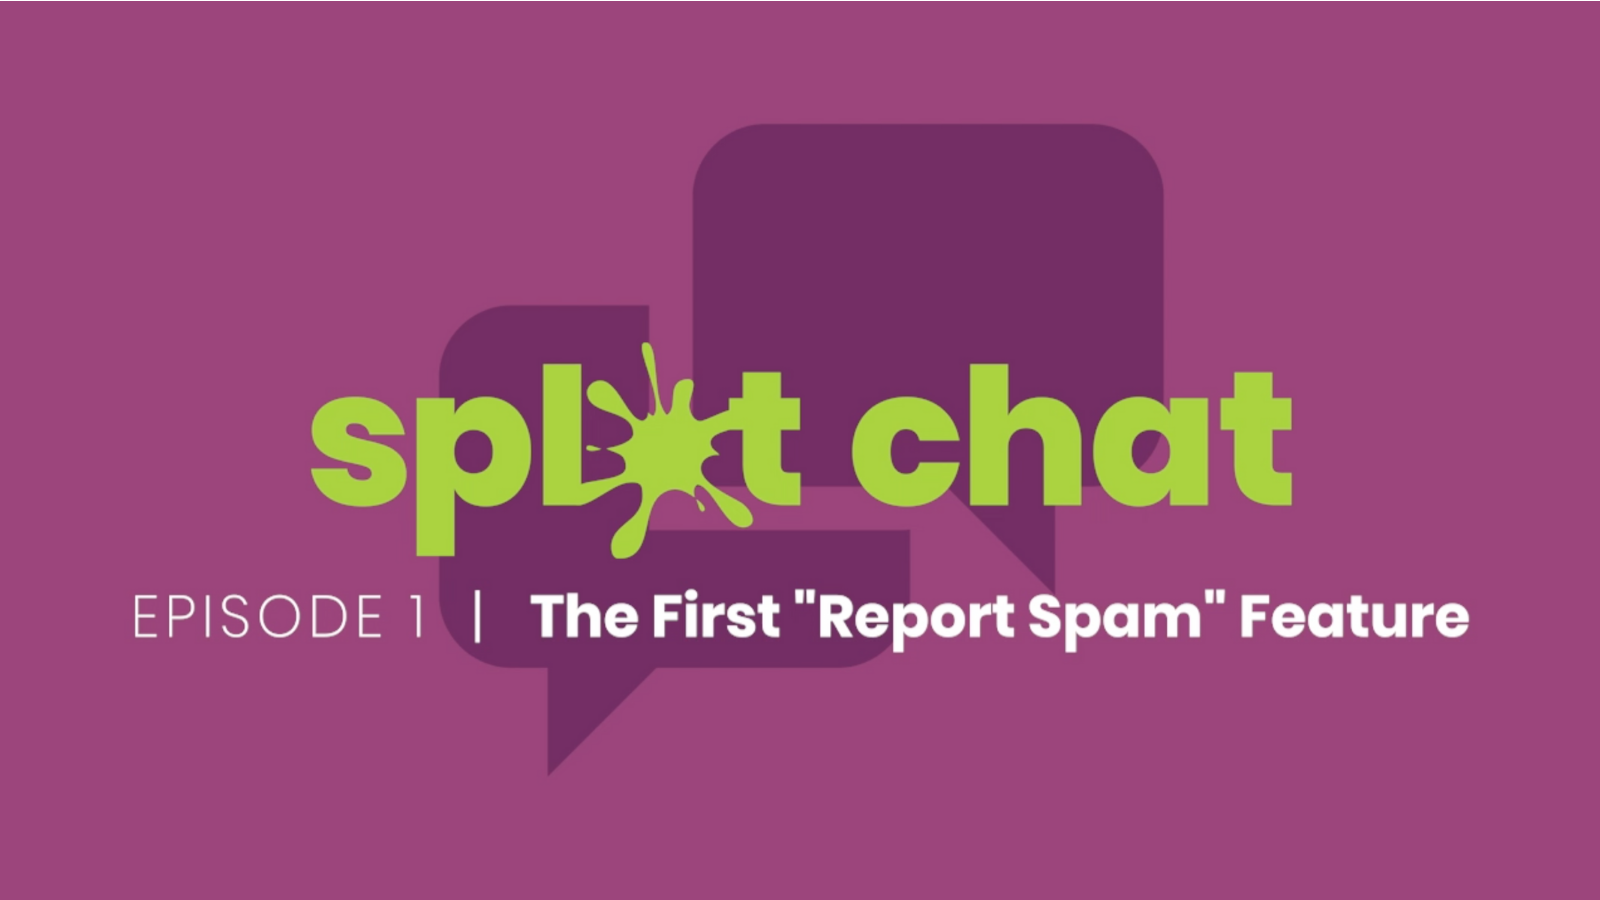 splat chat episode one title card